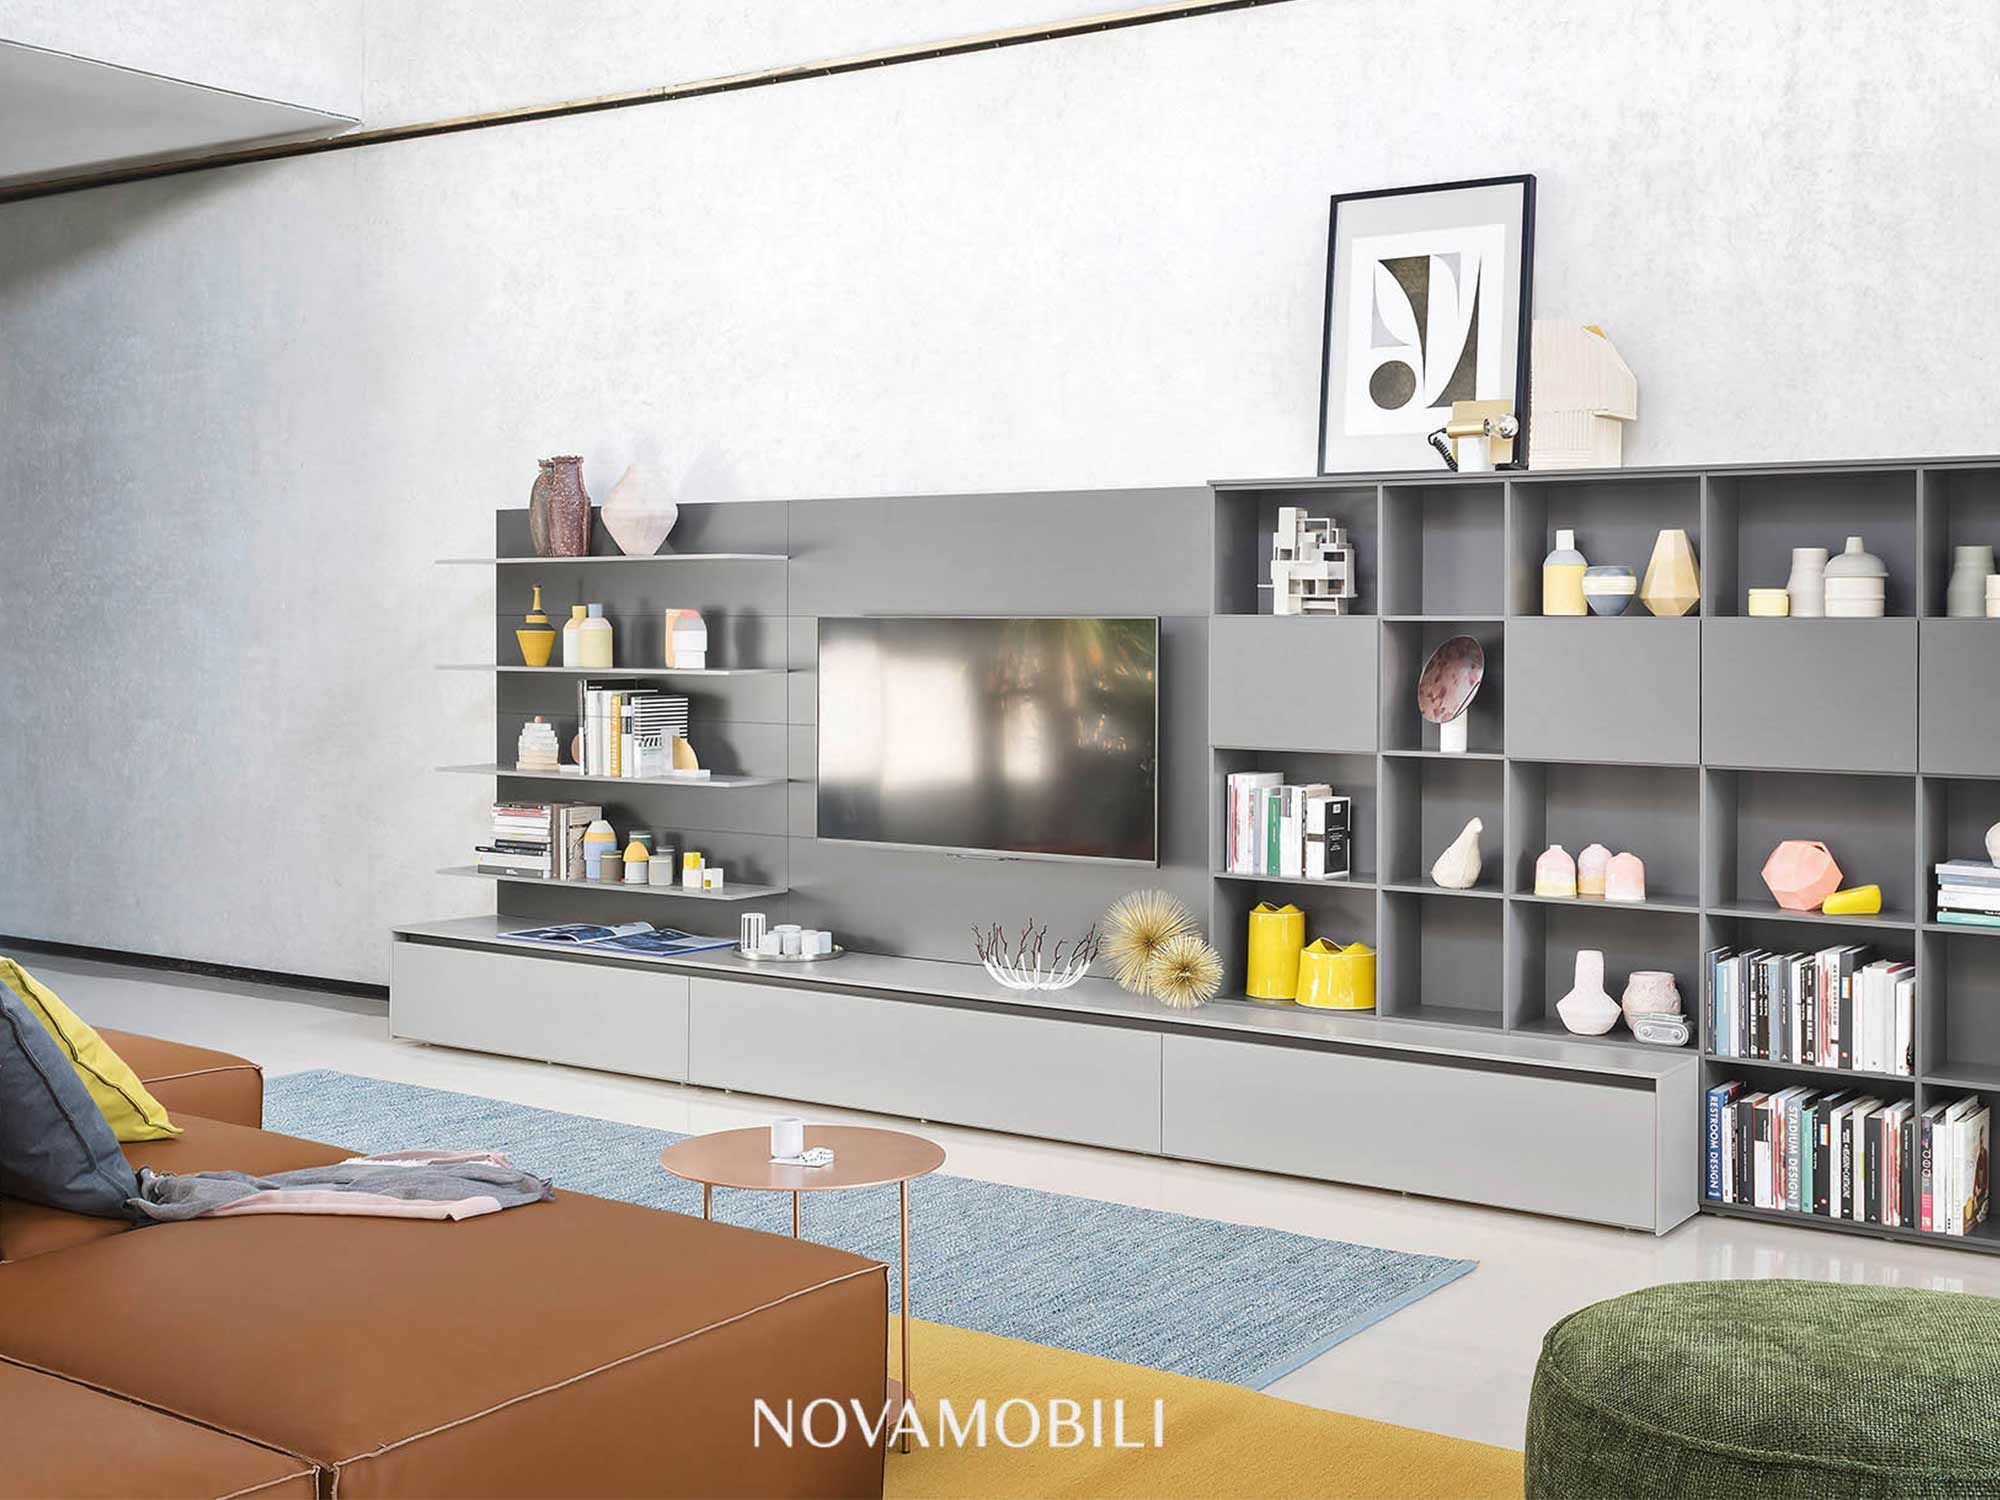 Modern living room interior design by Hubble with sofa and shelving